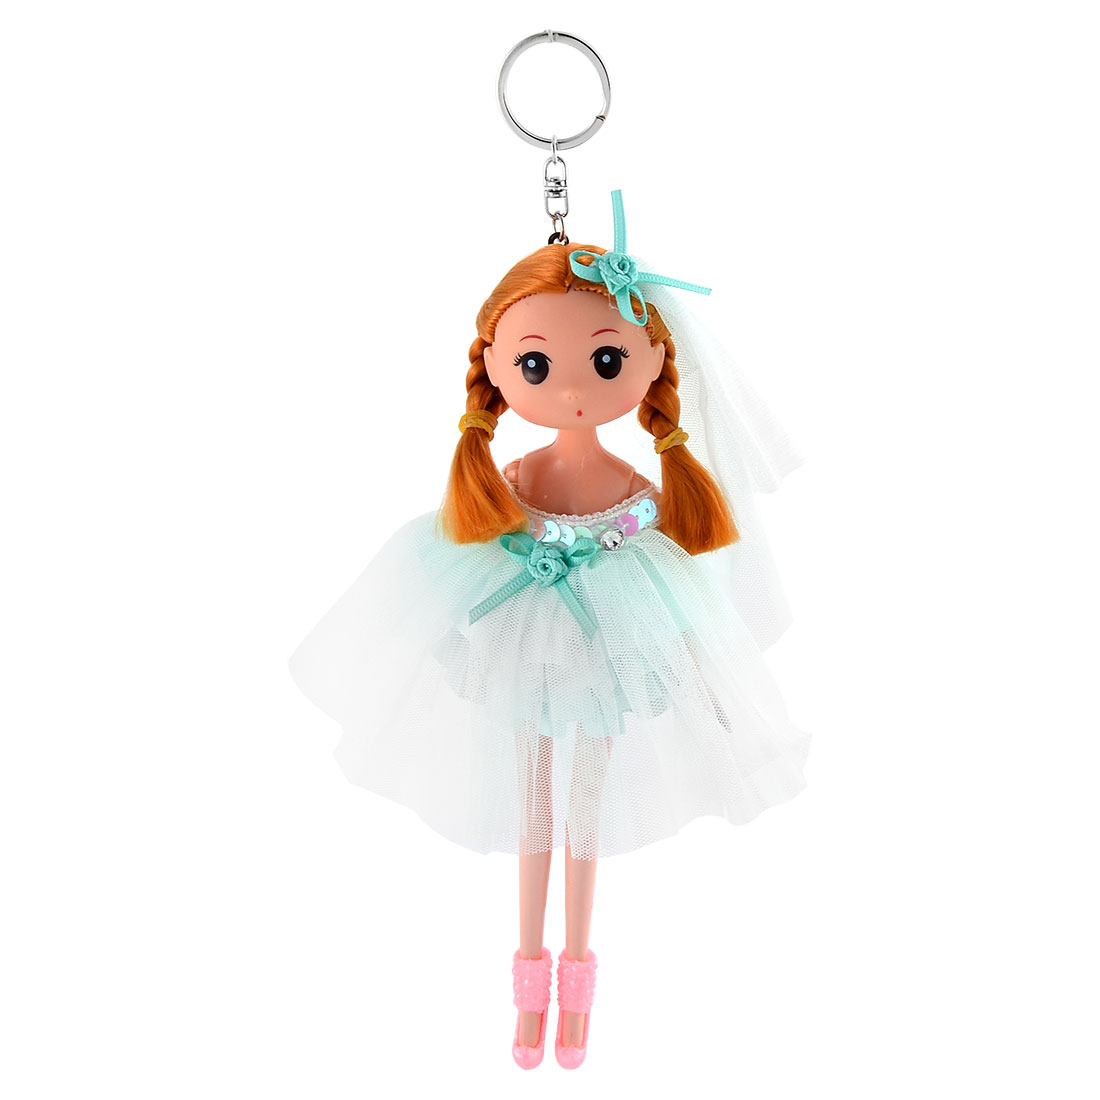 Girl Trunk Veil Dress Toy Design Pendant Hanging Doll Keychain Key Ring Green